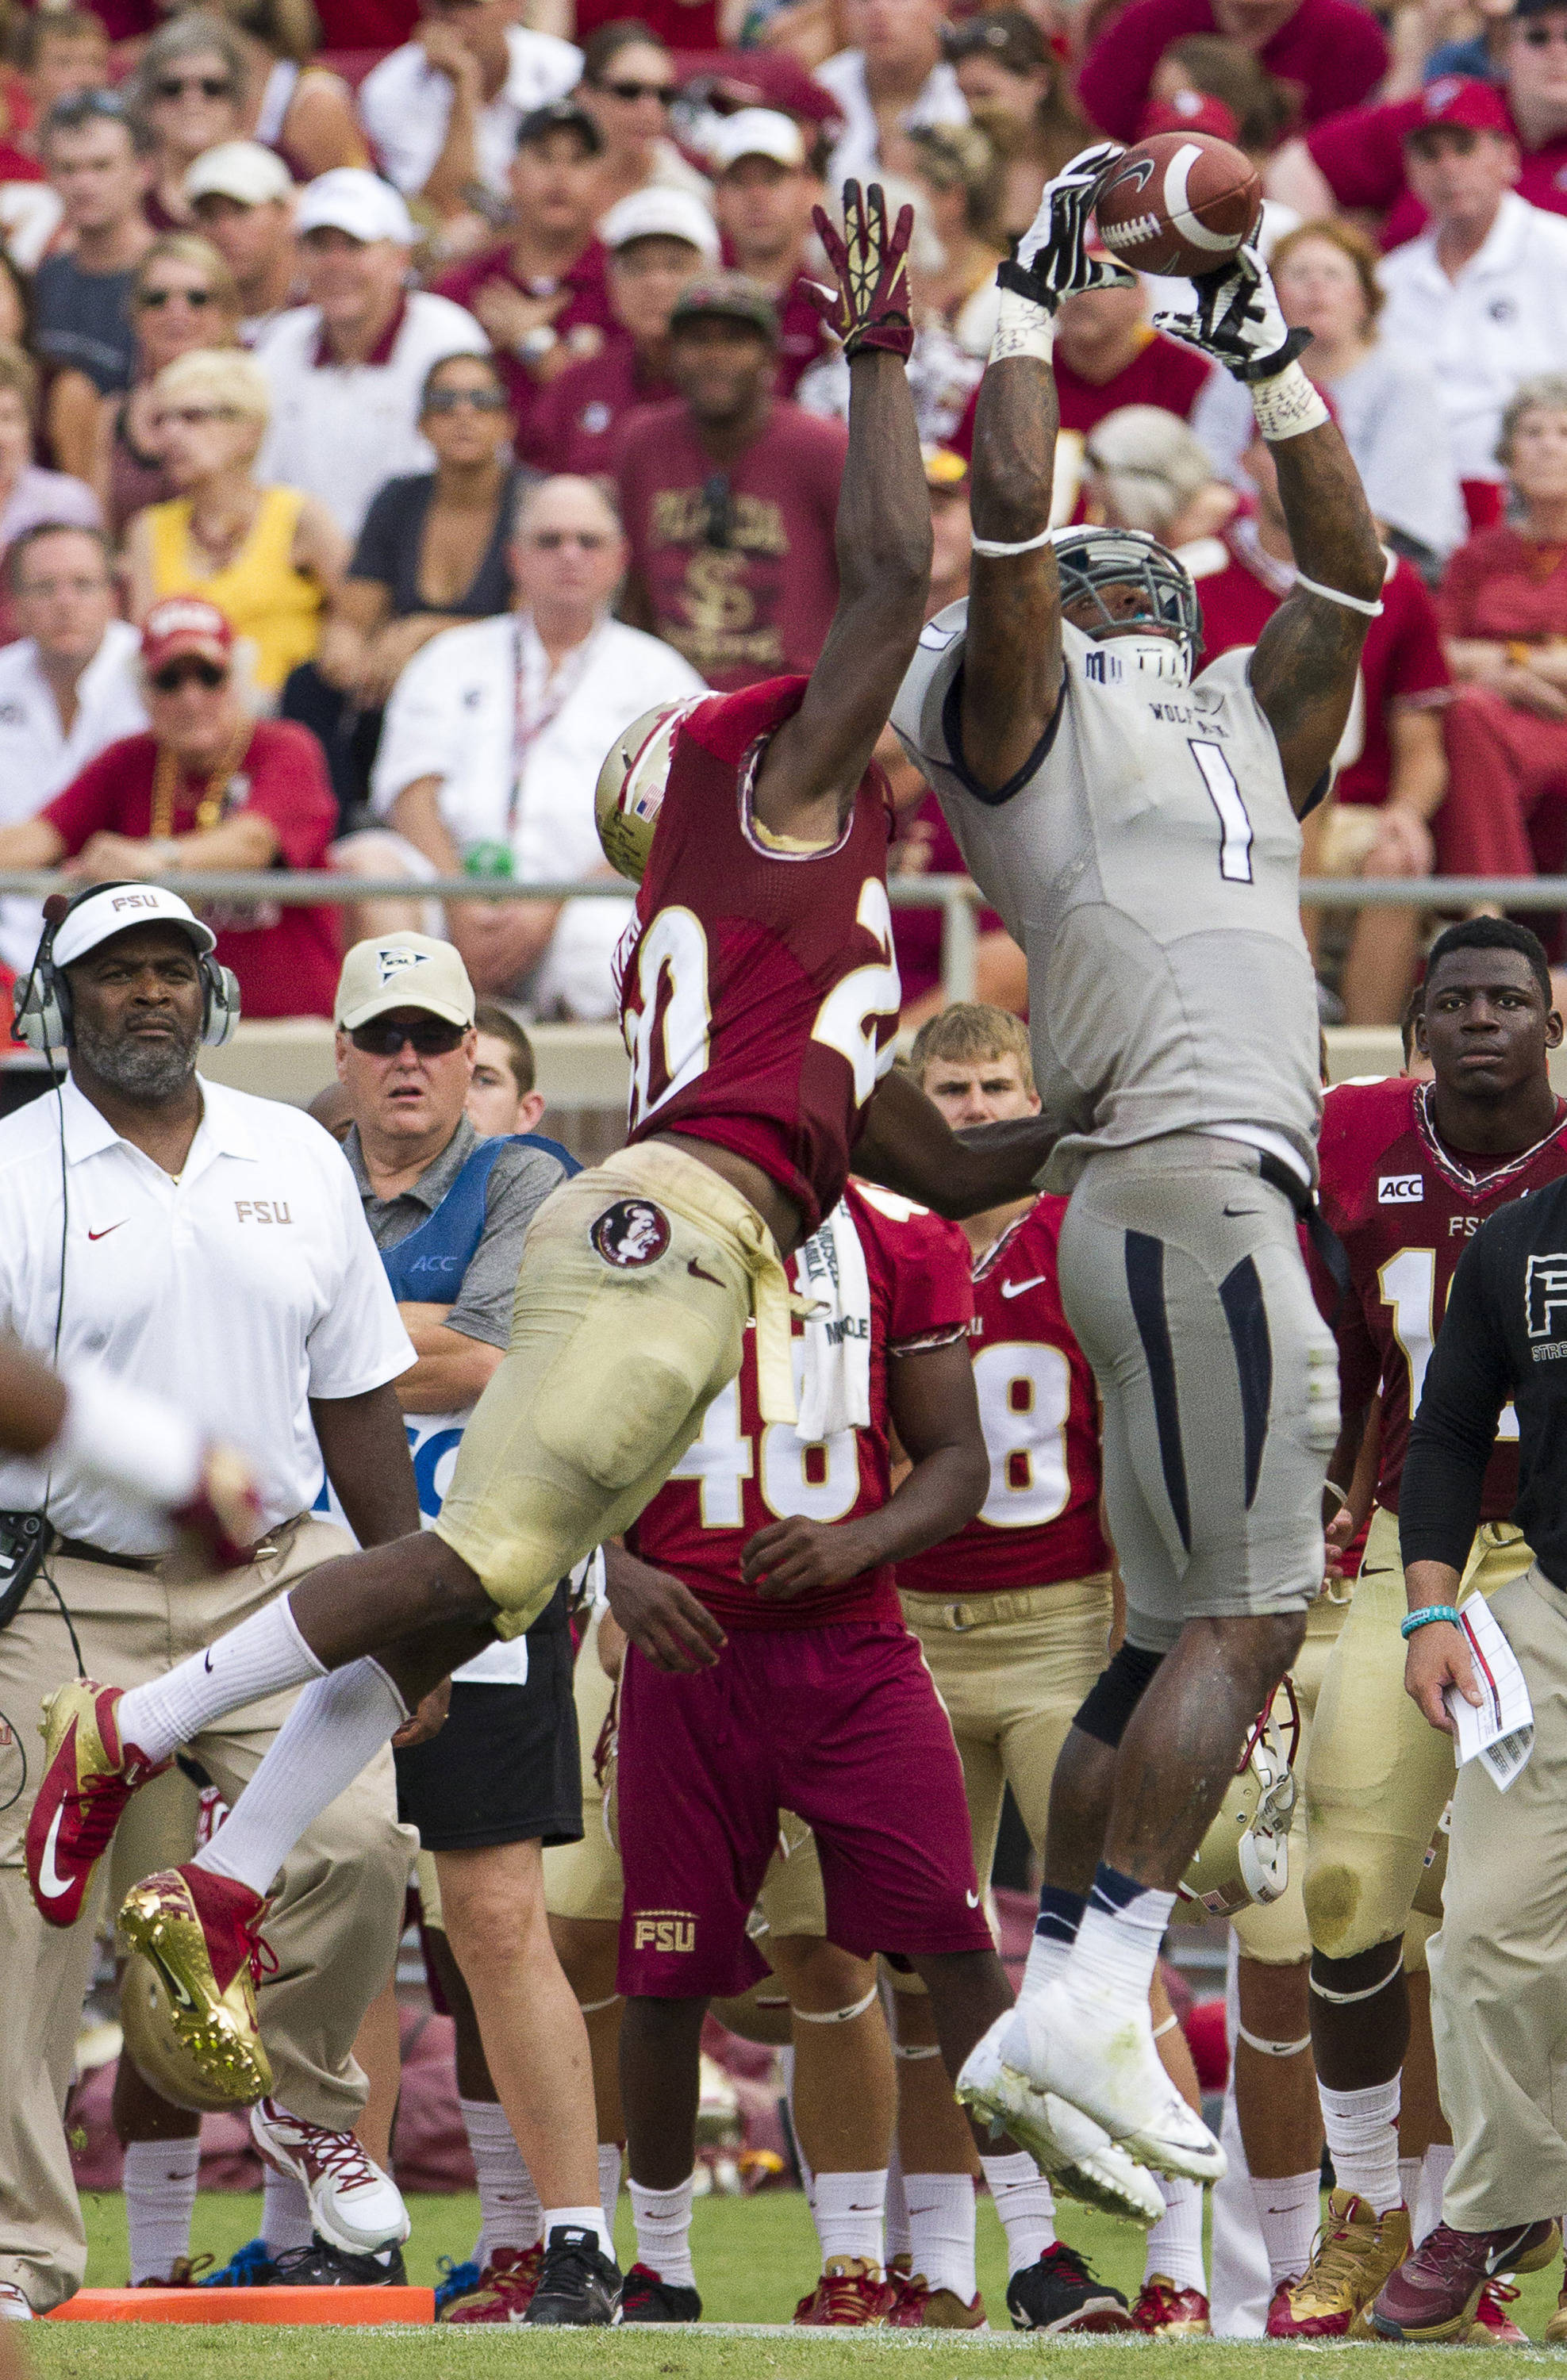 Lamarcus Joyner (20) attempts to break up a pass during FSU's 62-7 win over Nevada on Saturday, Sept 14, 2013 in Tallahassee, Fla.